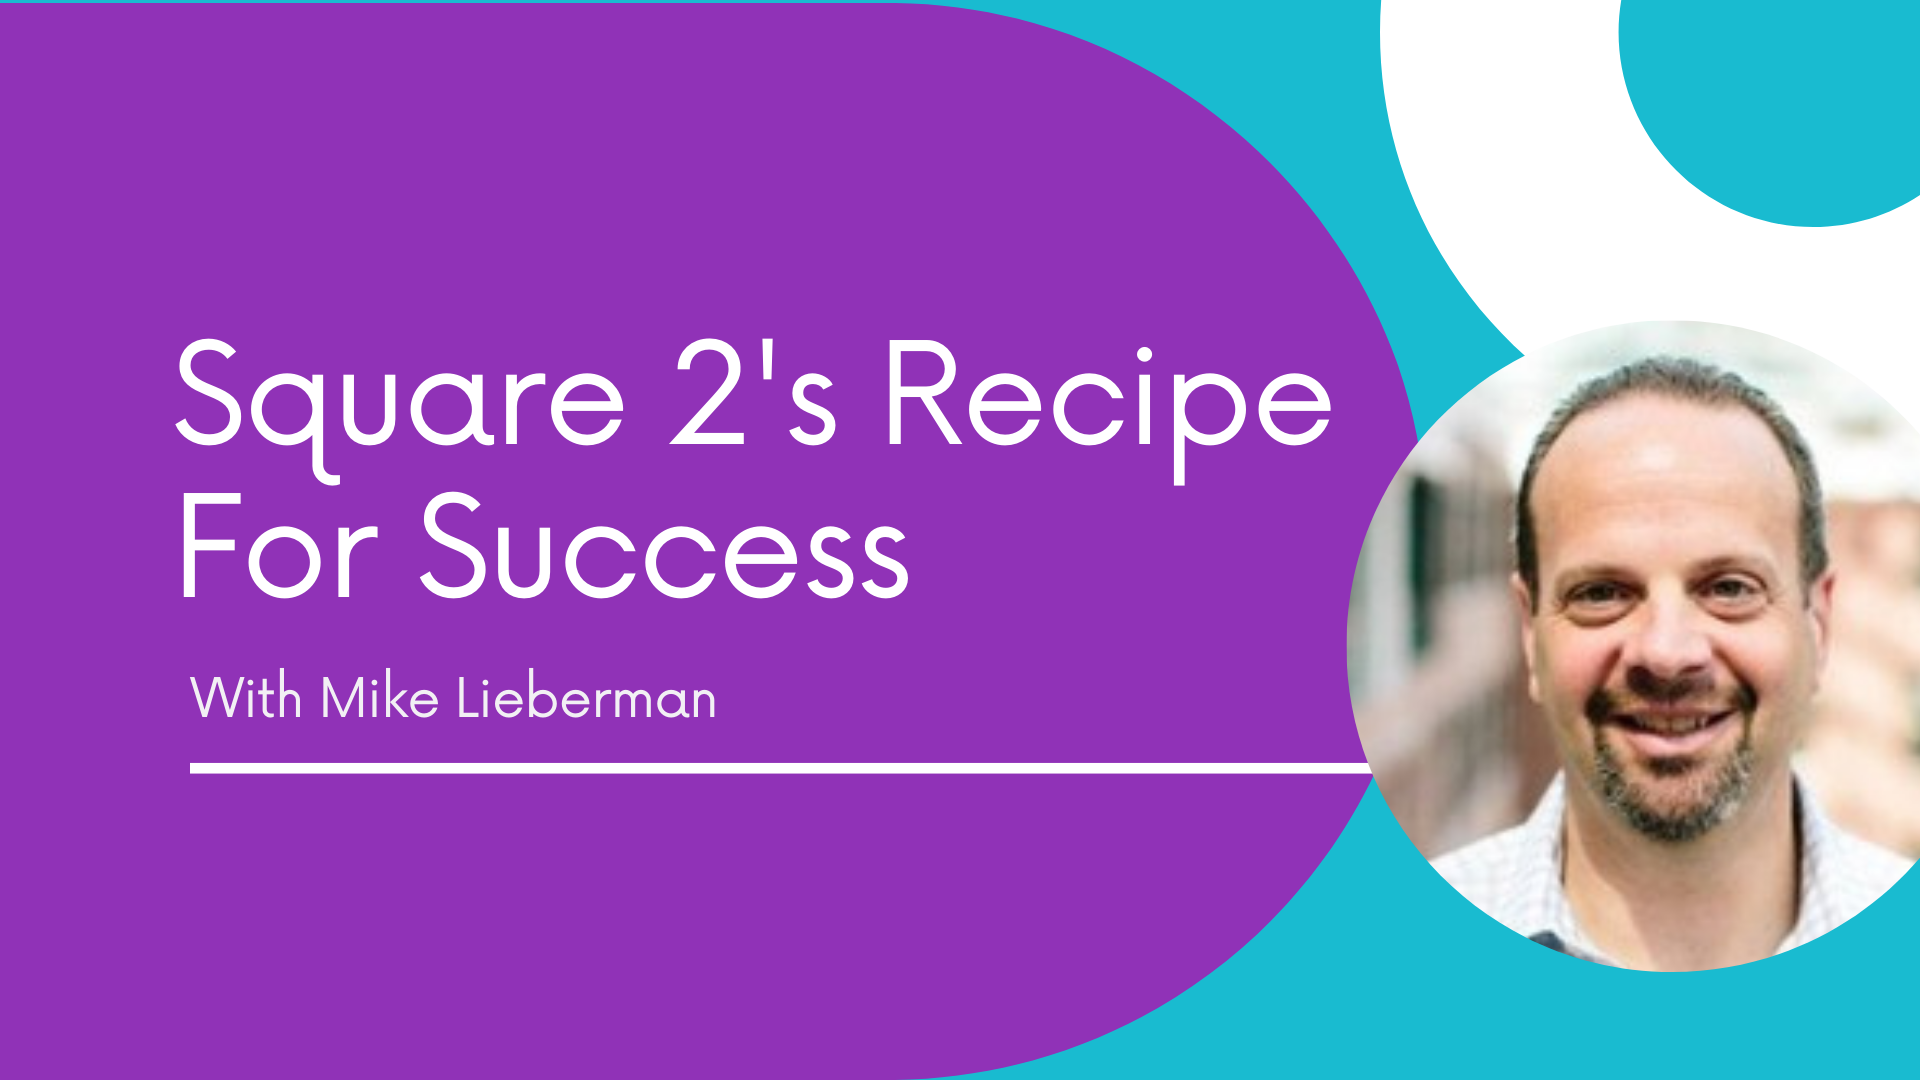 Square 2's Recipe For Success with Mike Lieberman